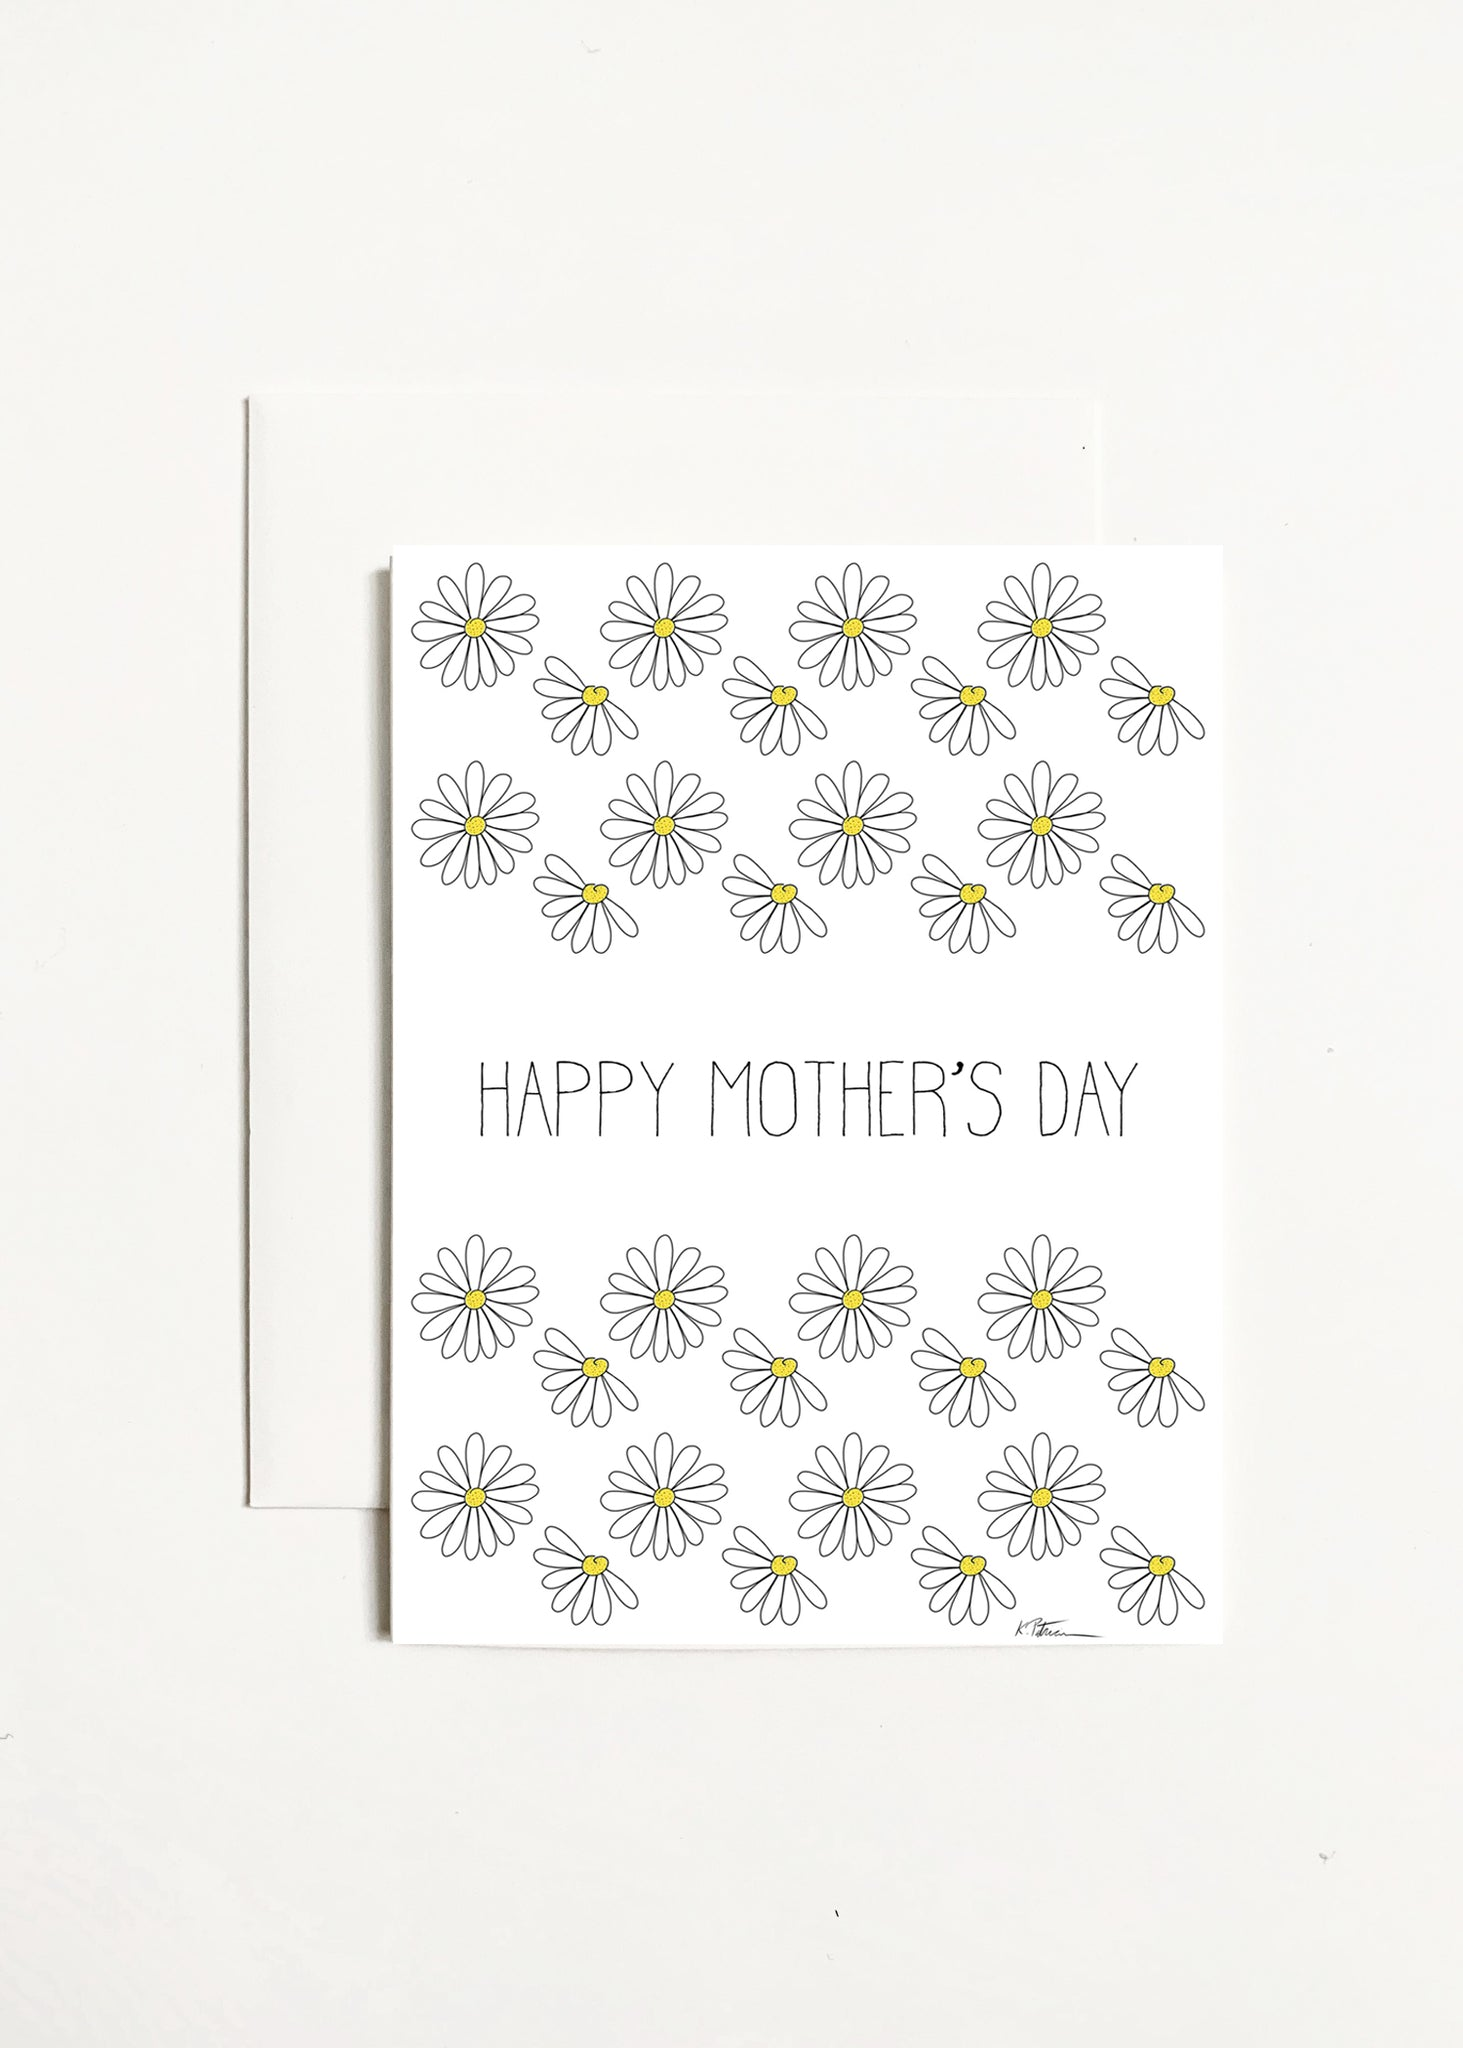 Happy Mother's Day! - Daisies